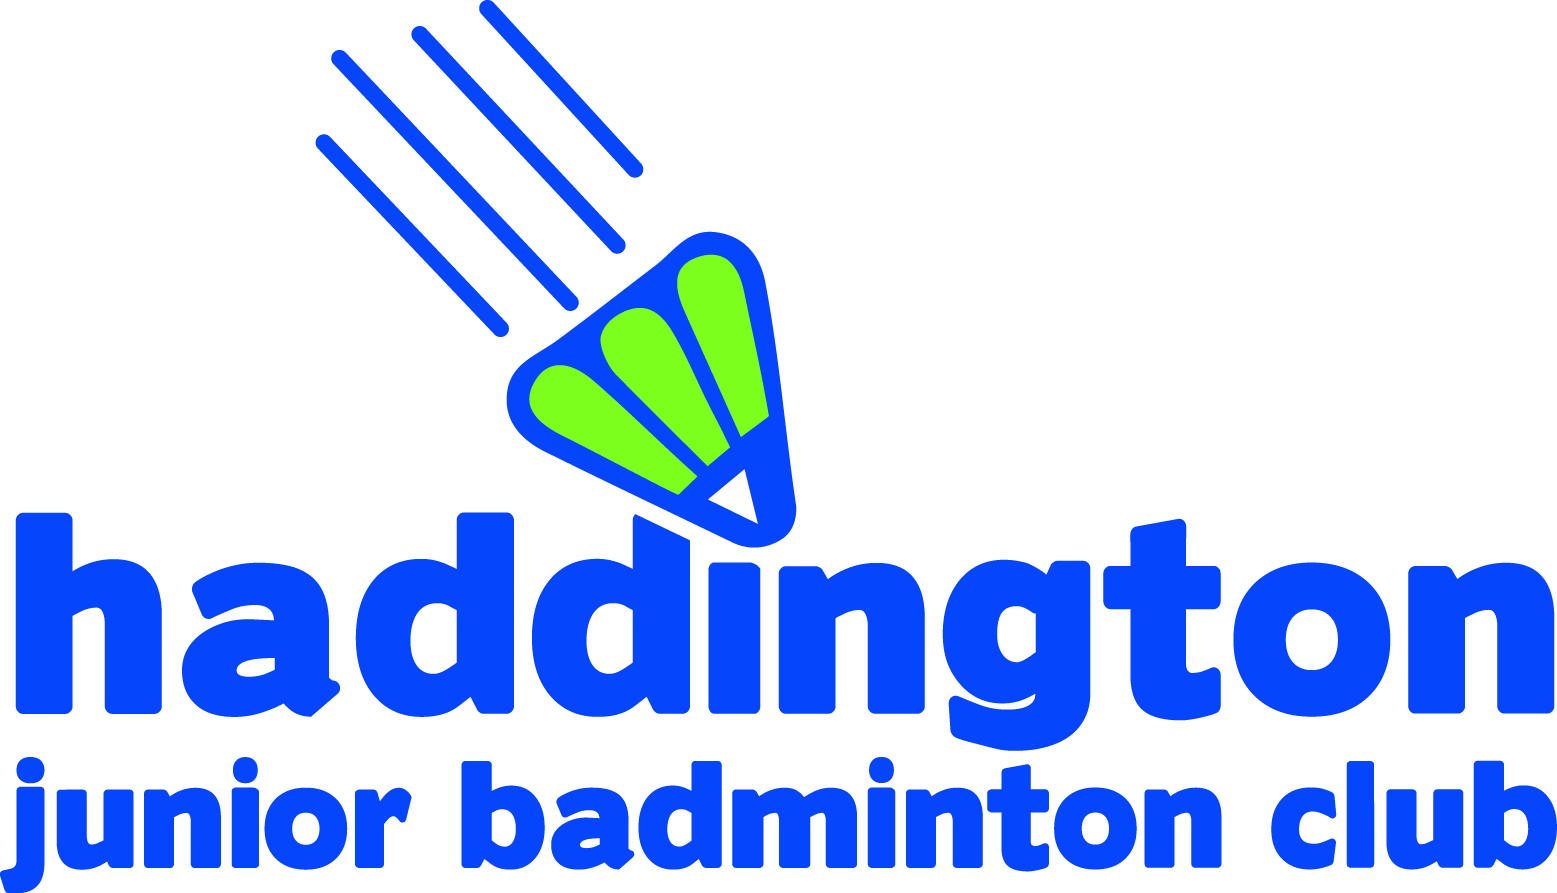 Haddington Junior Badminton Club